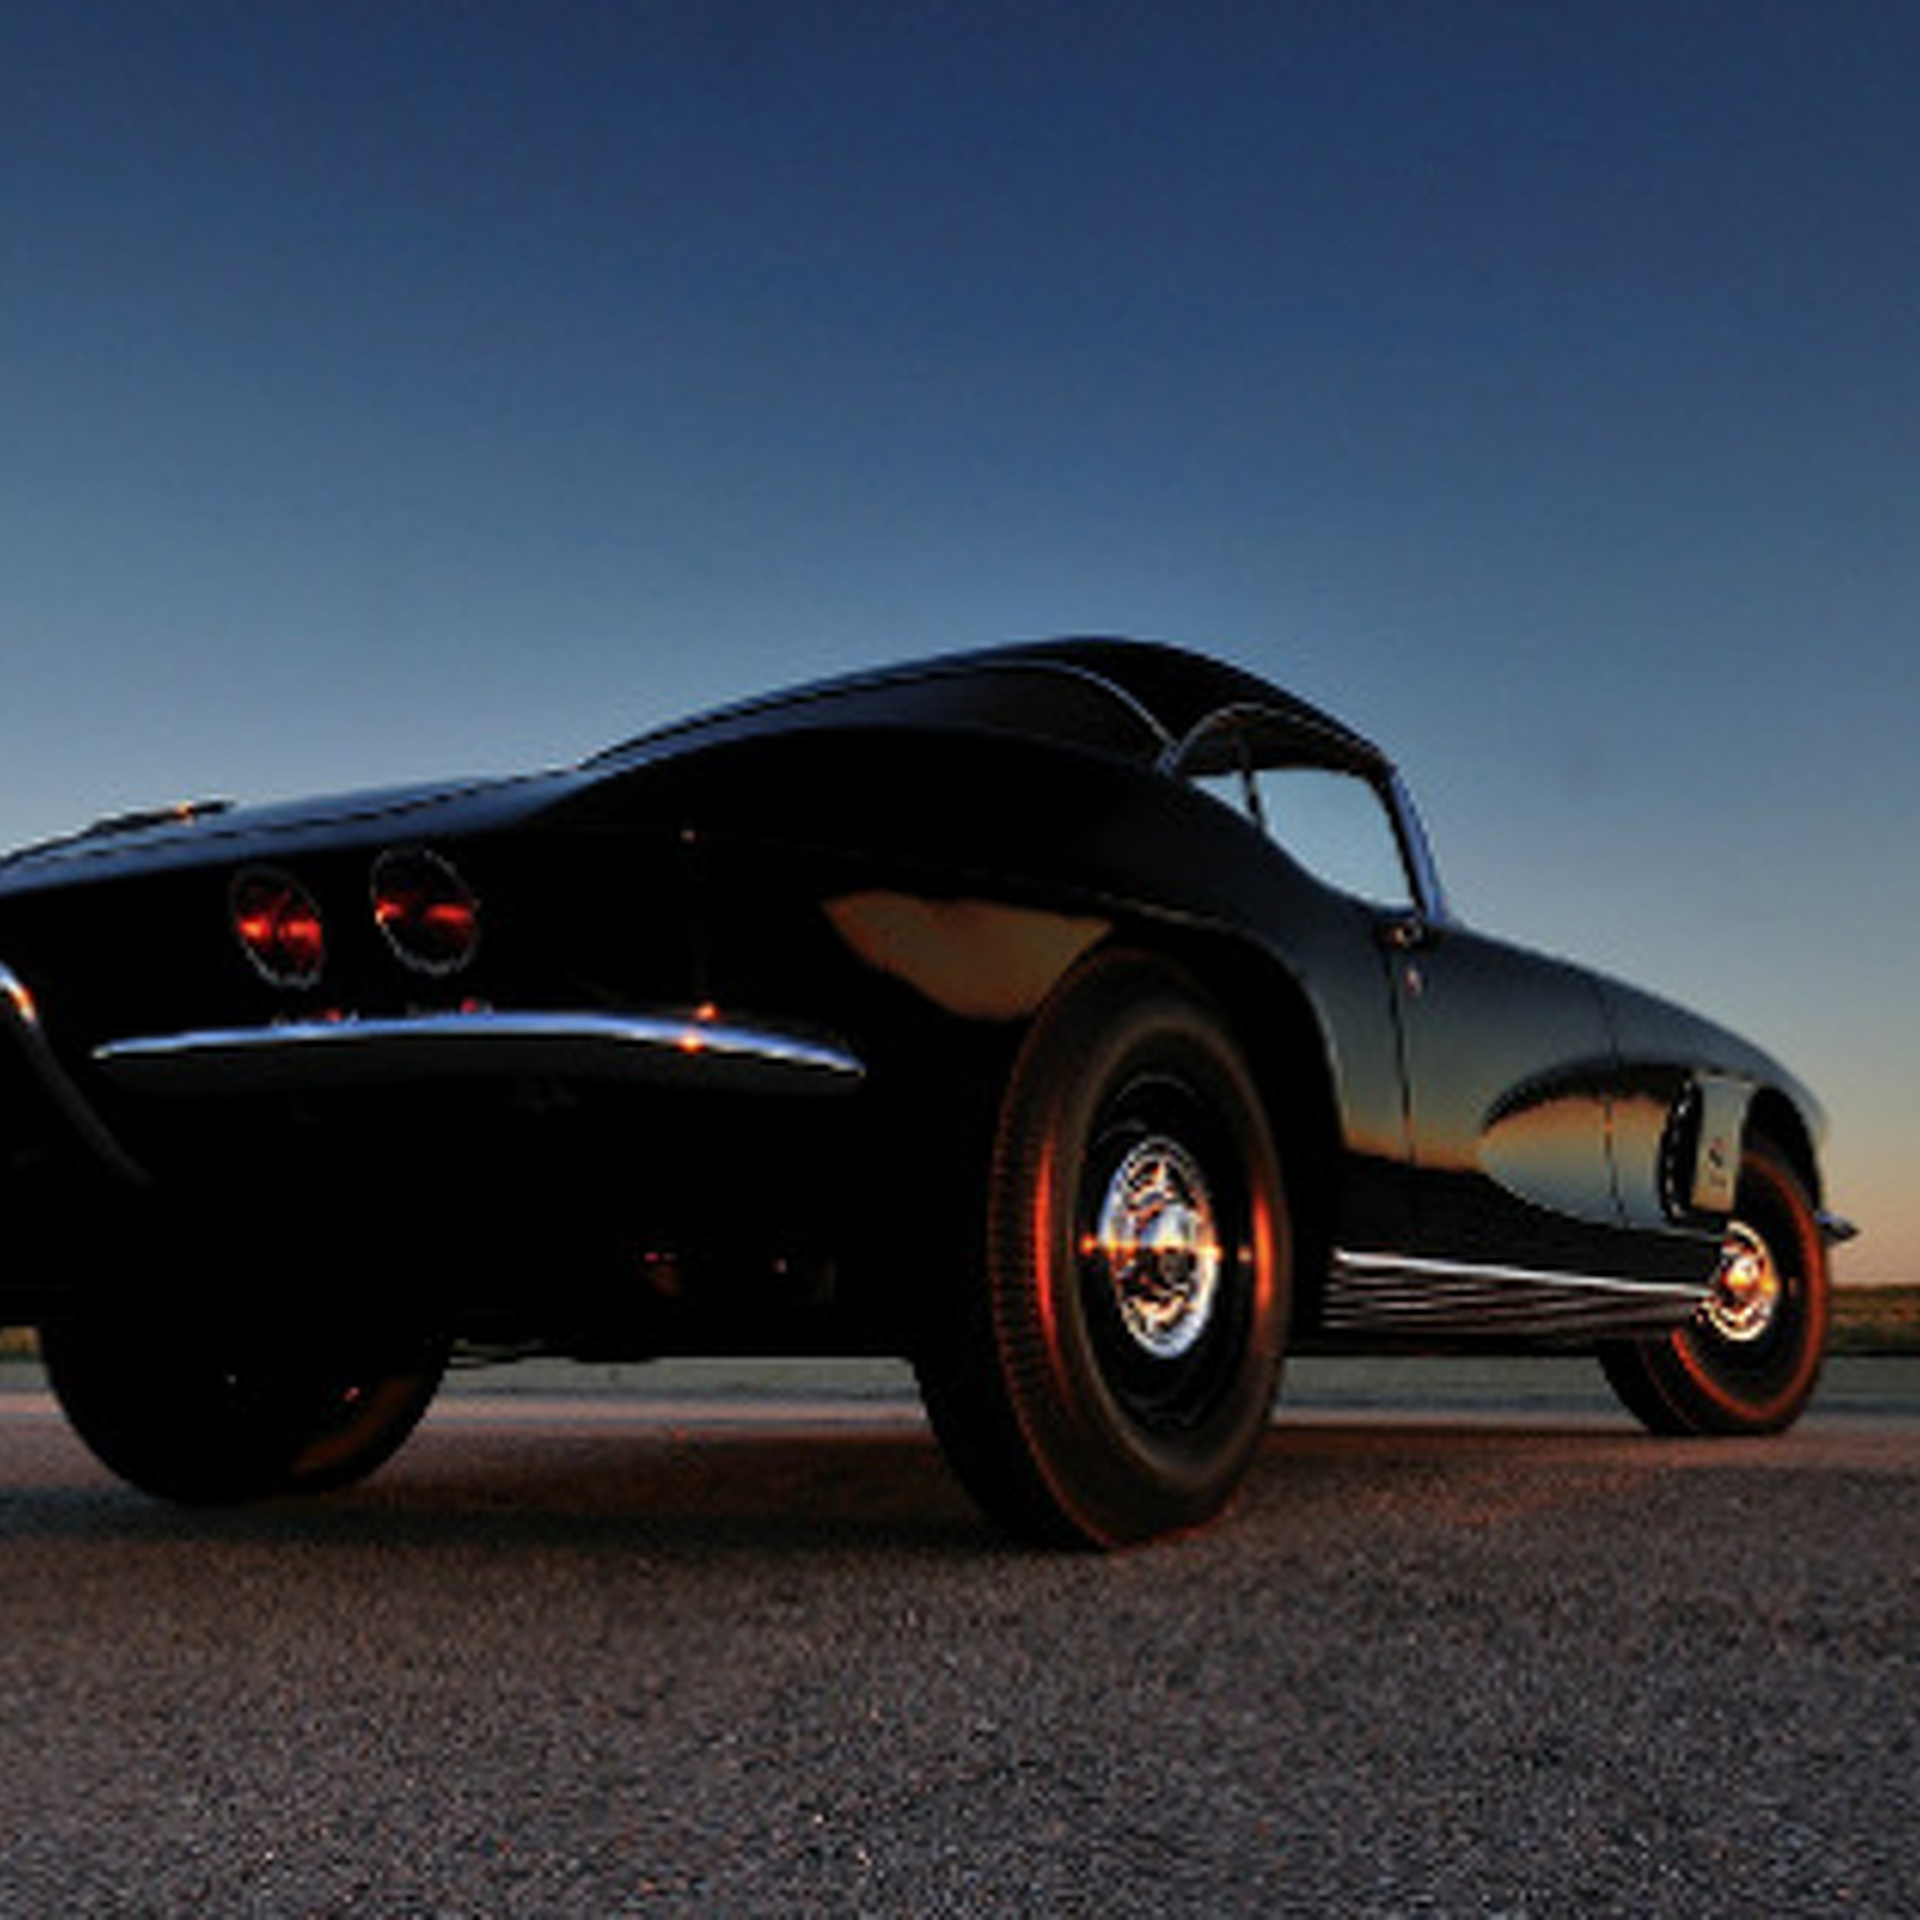 1962 Chevrolet Corvette Big-Brake Fuelie: A Closer Look